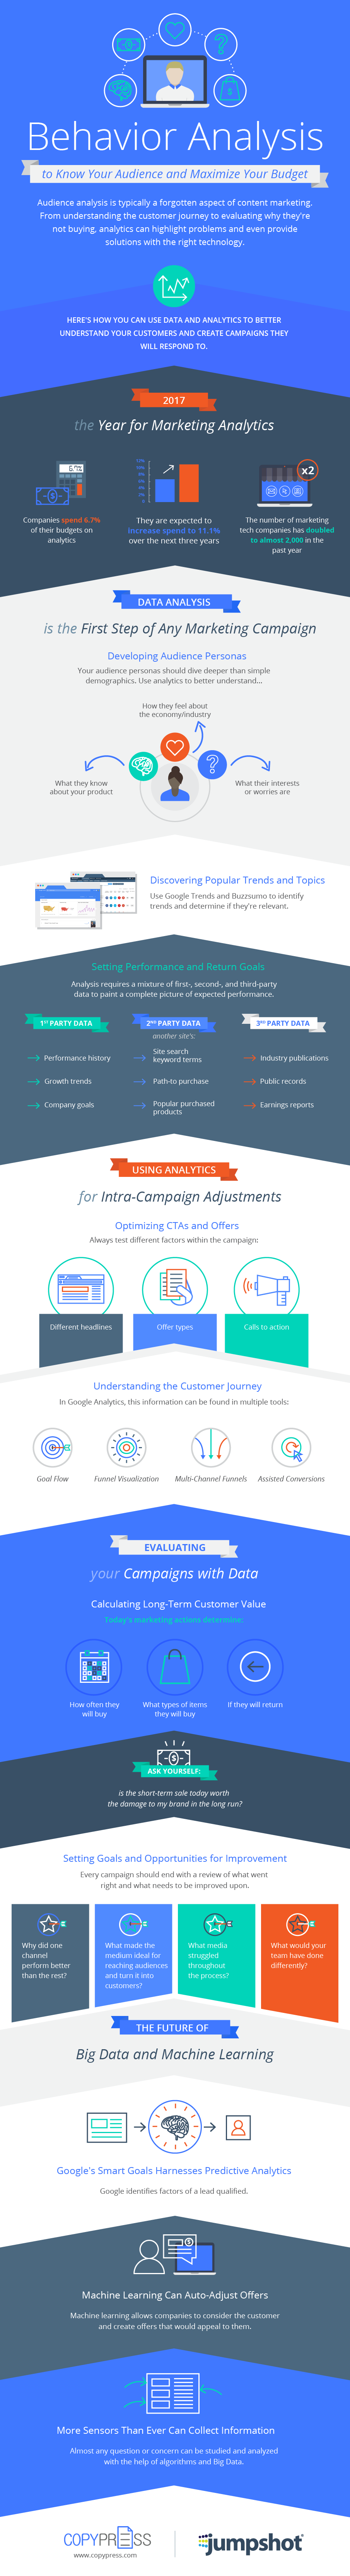 Using Behavioral Analysis to Improve Marketing ROI [Infographic] | Social Media Today